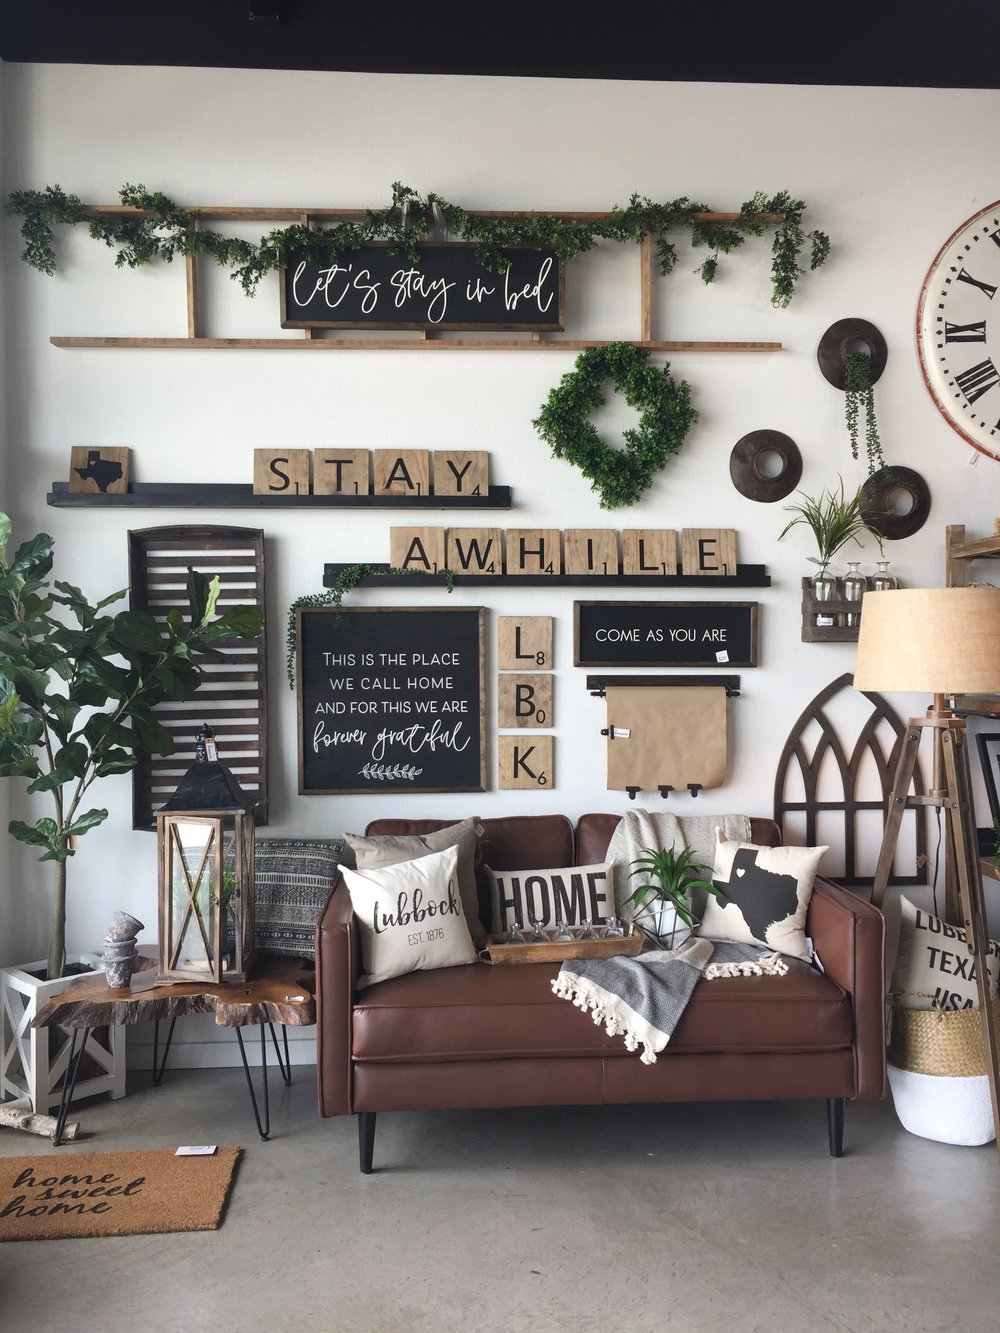 About Odds & Ends - A mother-daughter team that wanted to give Lubbock a place to find unique & one of a kind gifts and home décor items.Odds and Ends has grown into a hub for fellow small businesses to grow together by supporting local makers and crafts people!